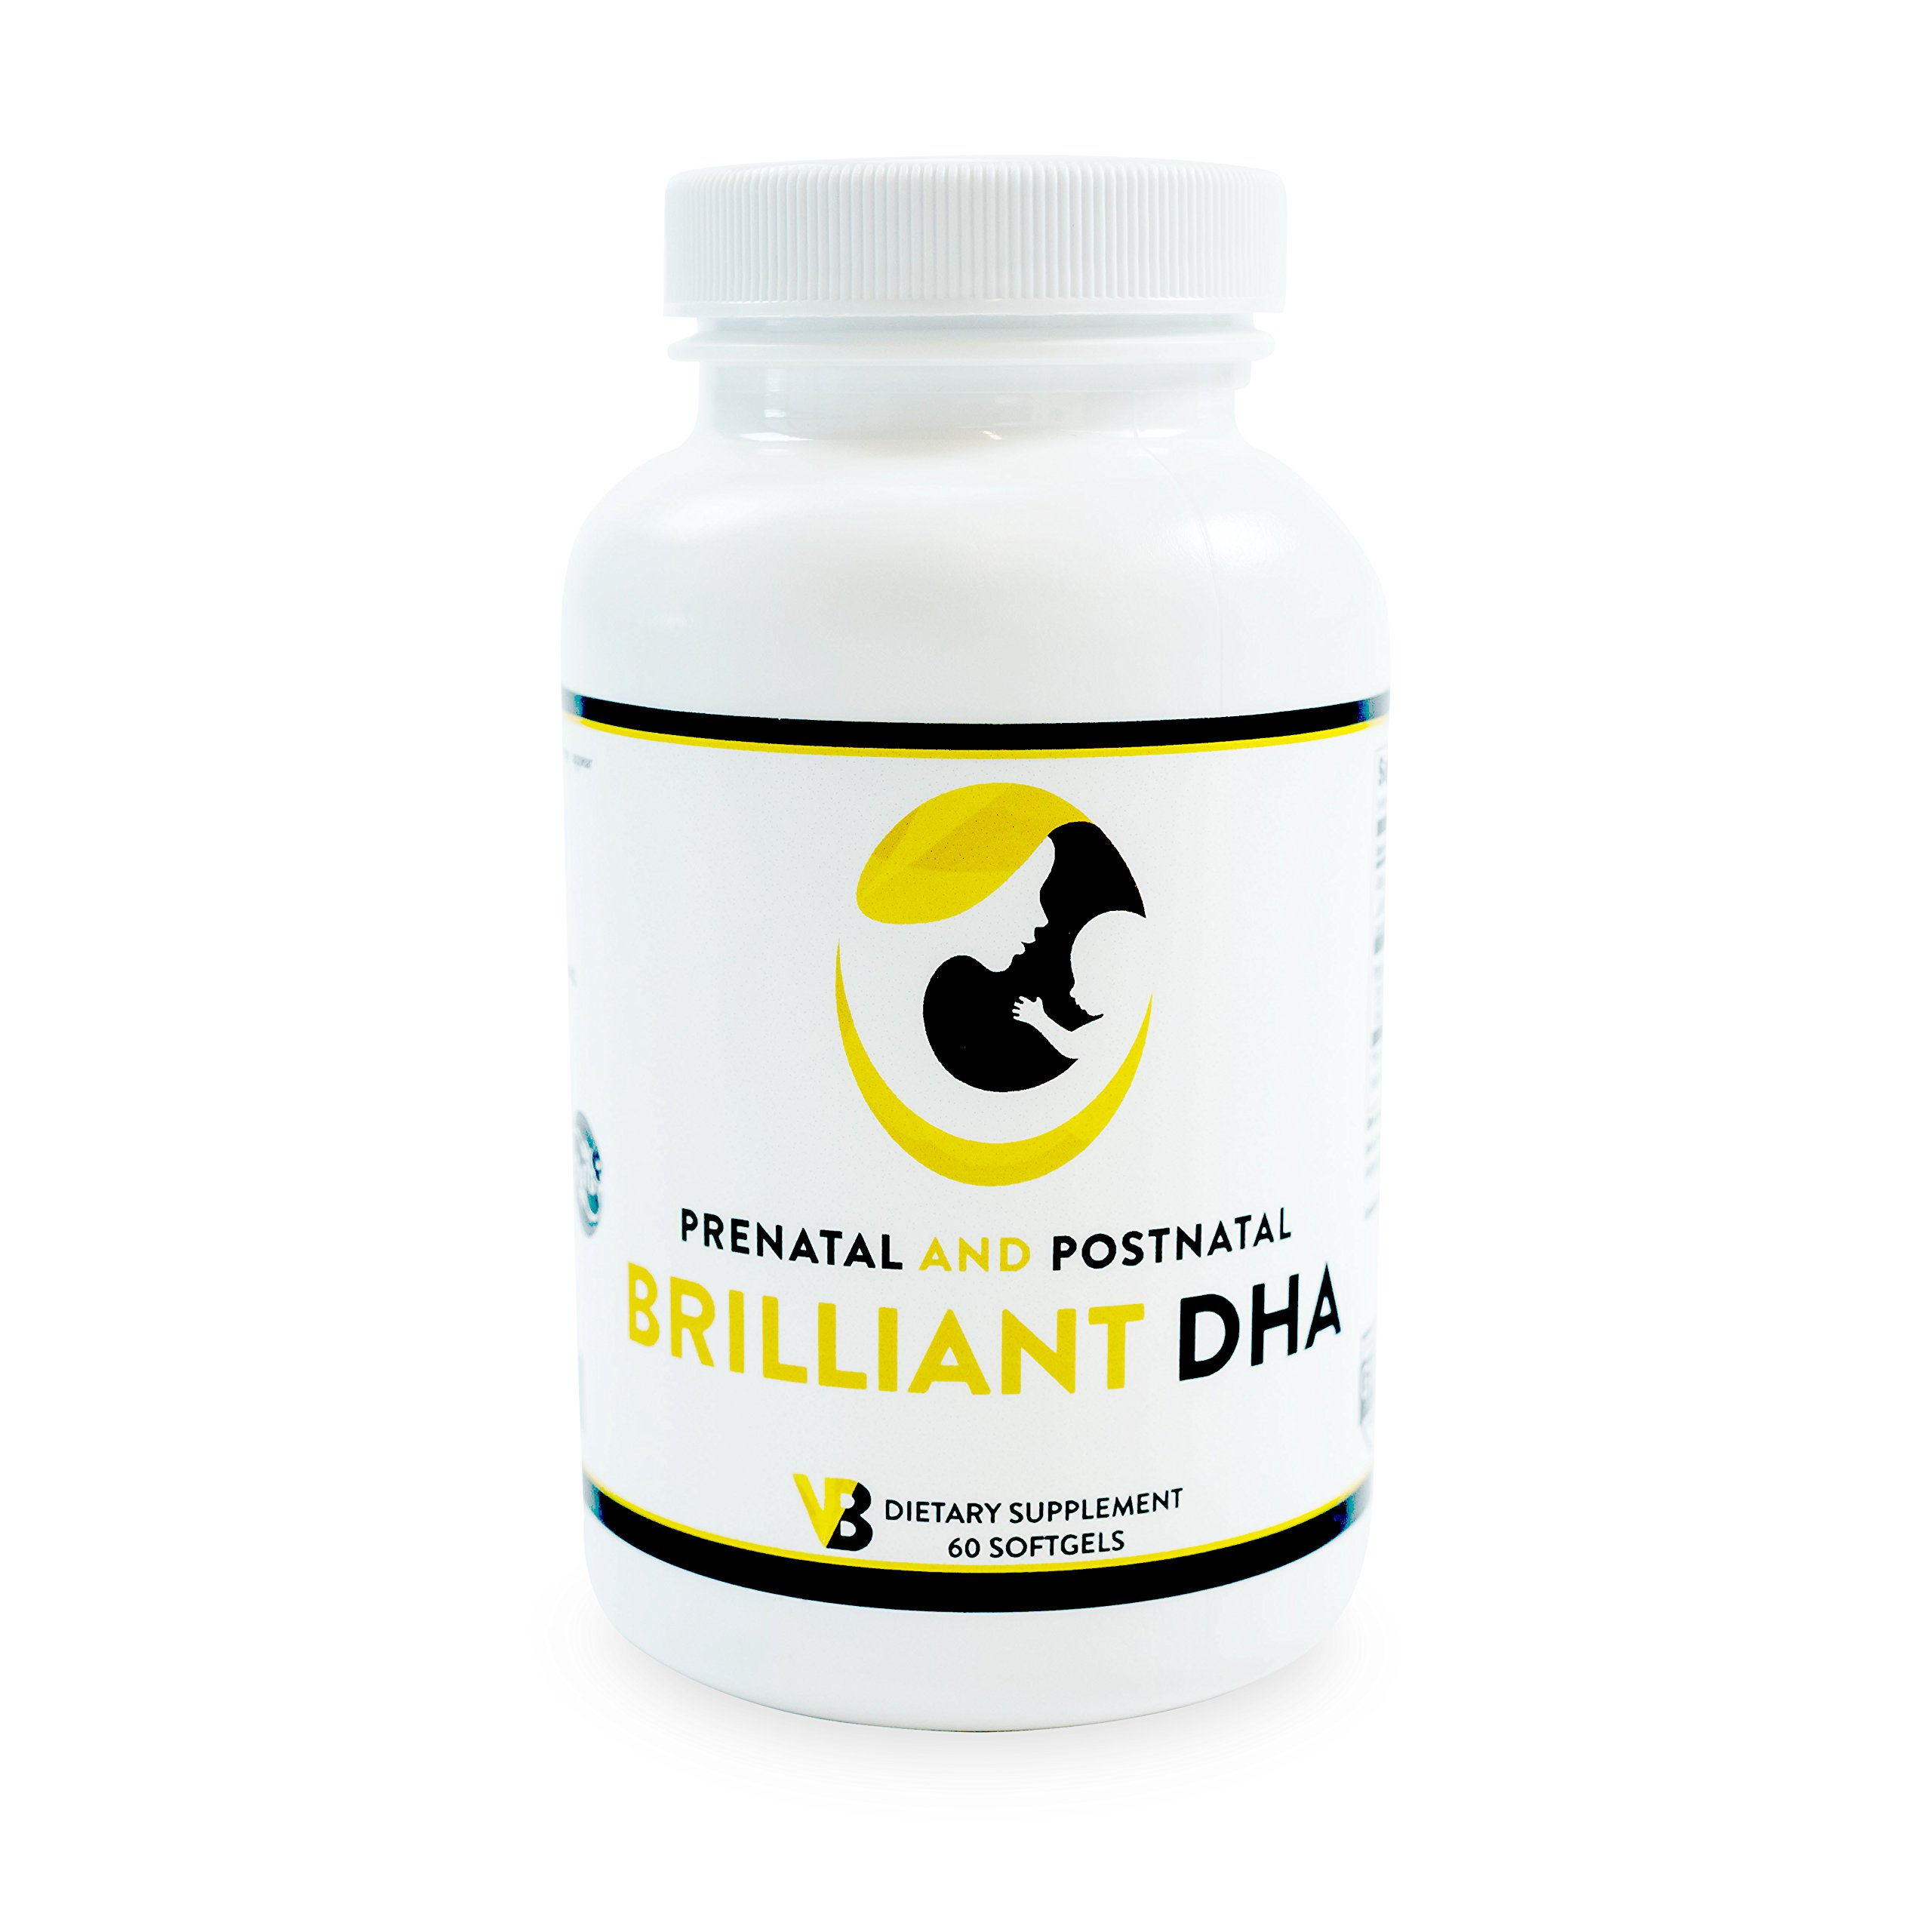 DHA Vitamins for Pregnancy/Postpartum, Supplements for Prenatal/Postnatal Women, Pure Triglyceride Omega 3 Small Fish 500/110 mg DHA/EPA - Vibrant Beginning Brilliant DHA 2-Month Supply (60 softgels)